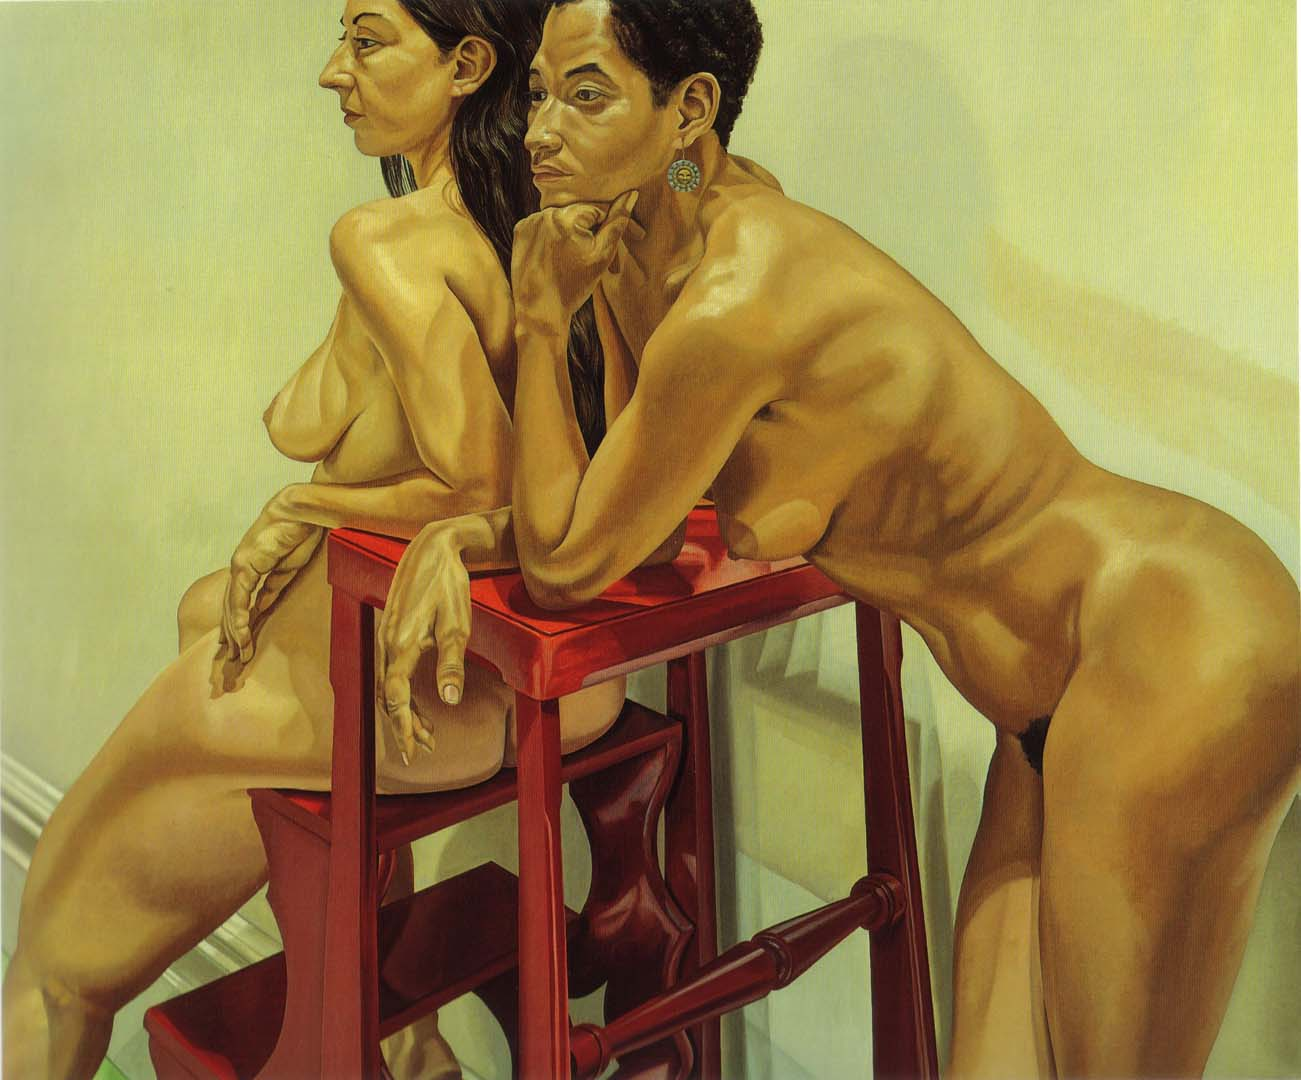 1983 Two Models with Ladder Oil on Canvas 60 x 72